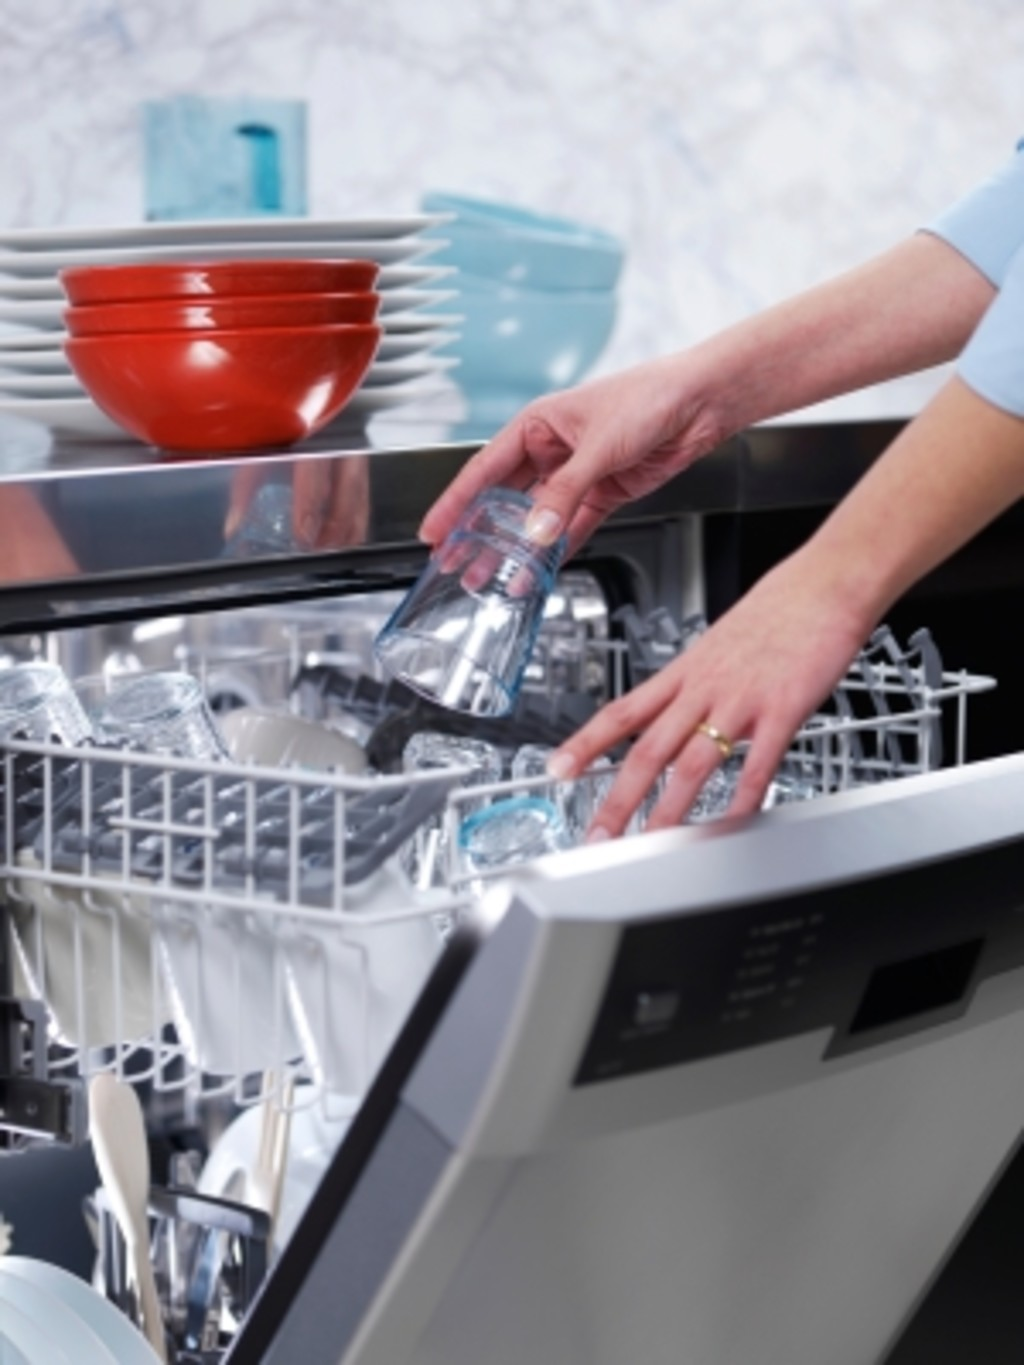 Absolute Appliance Care - Dishwasher Repair